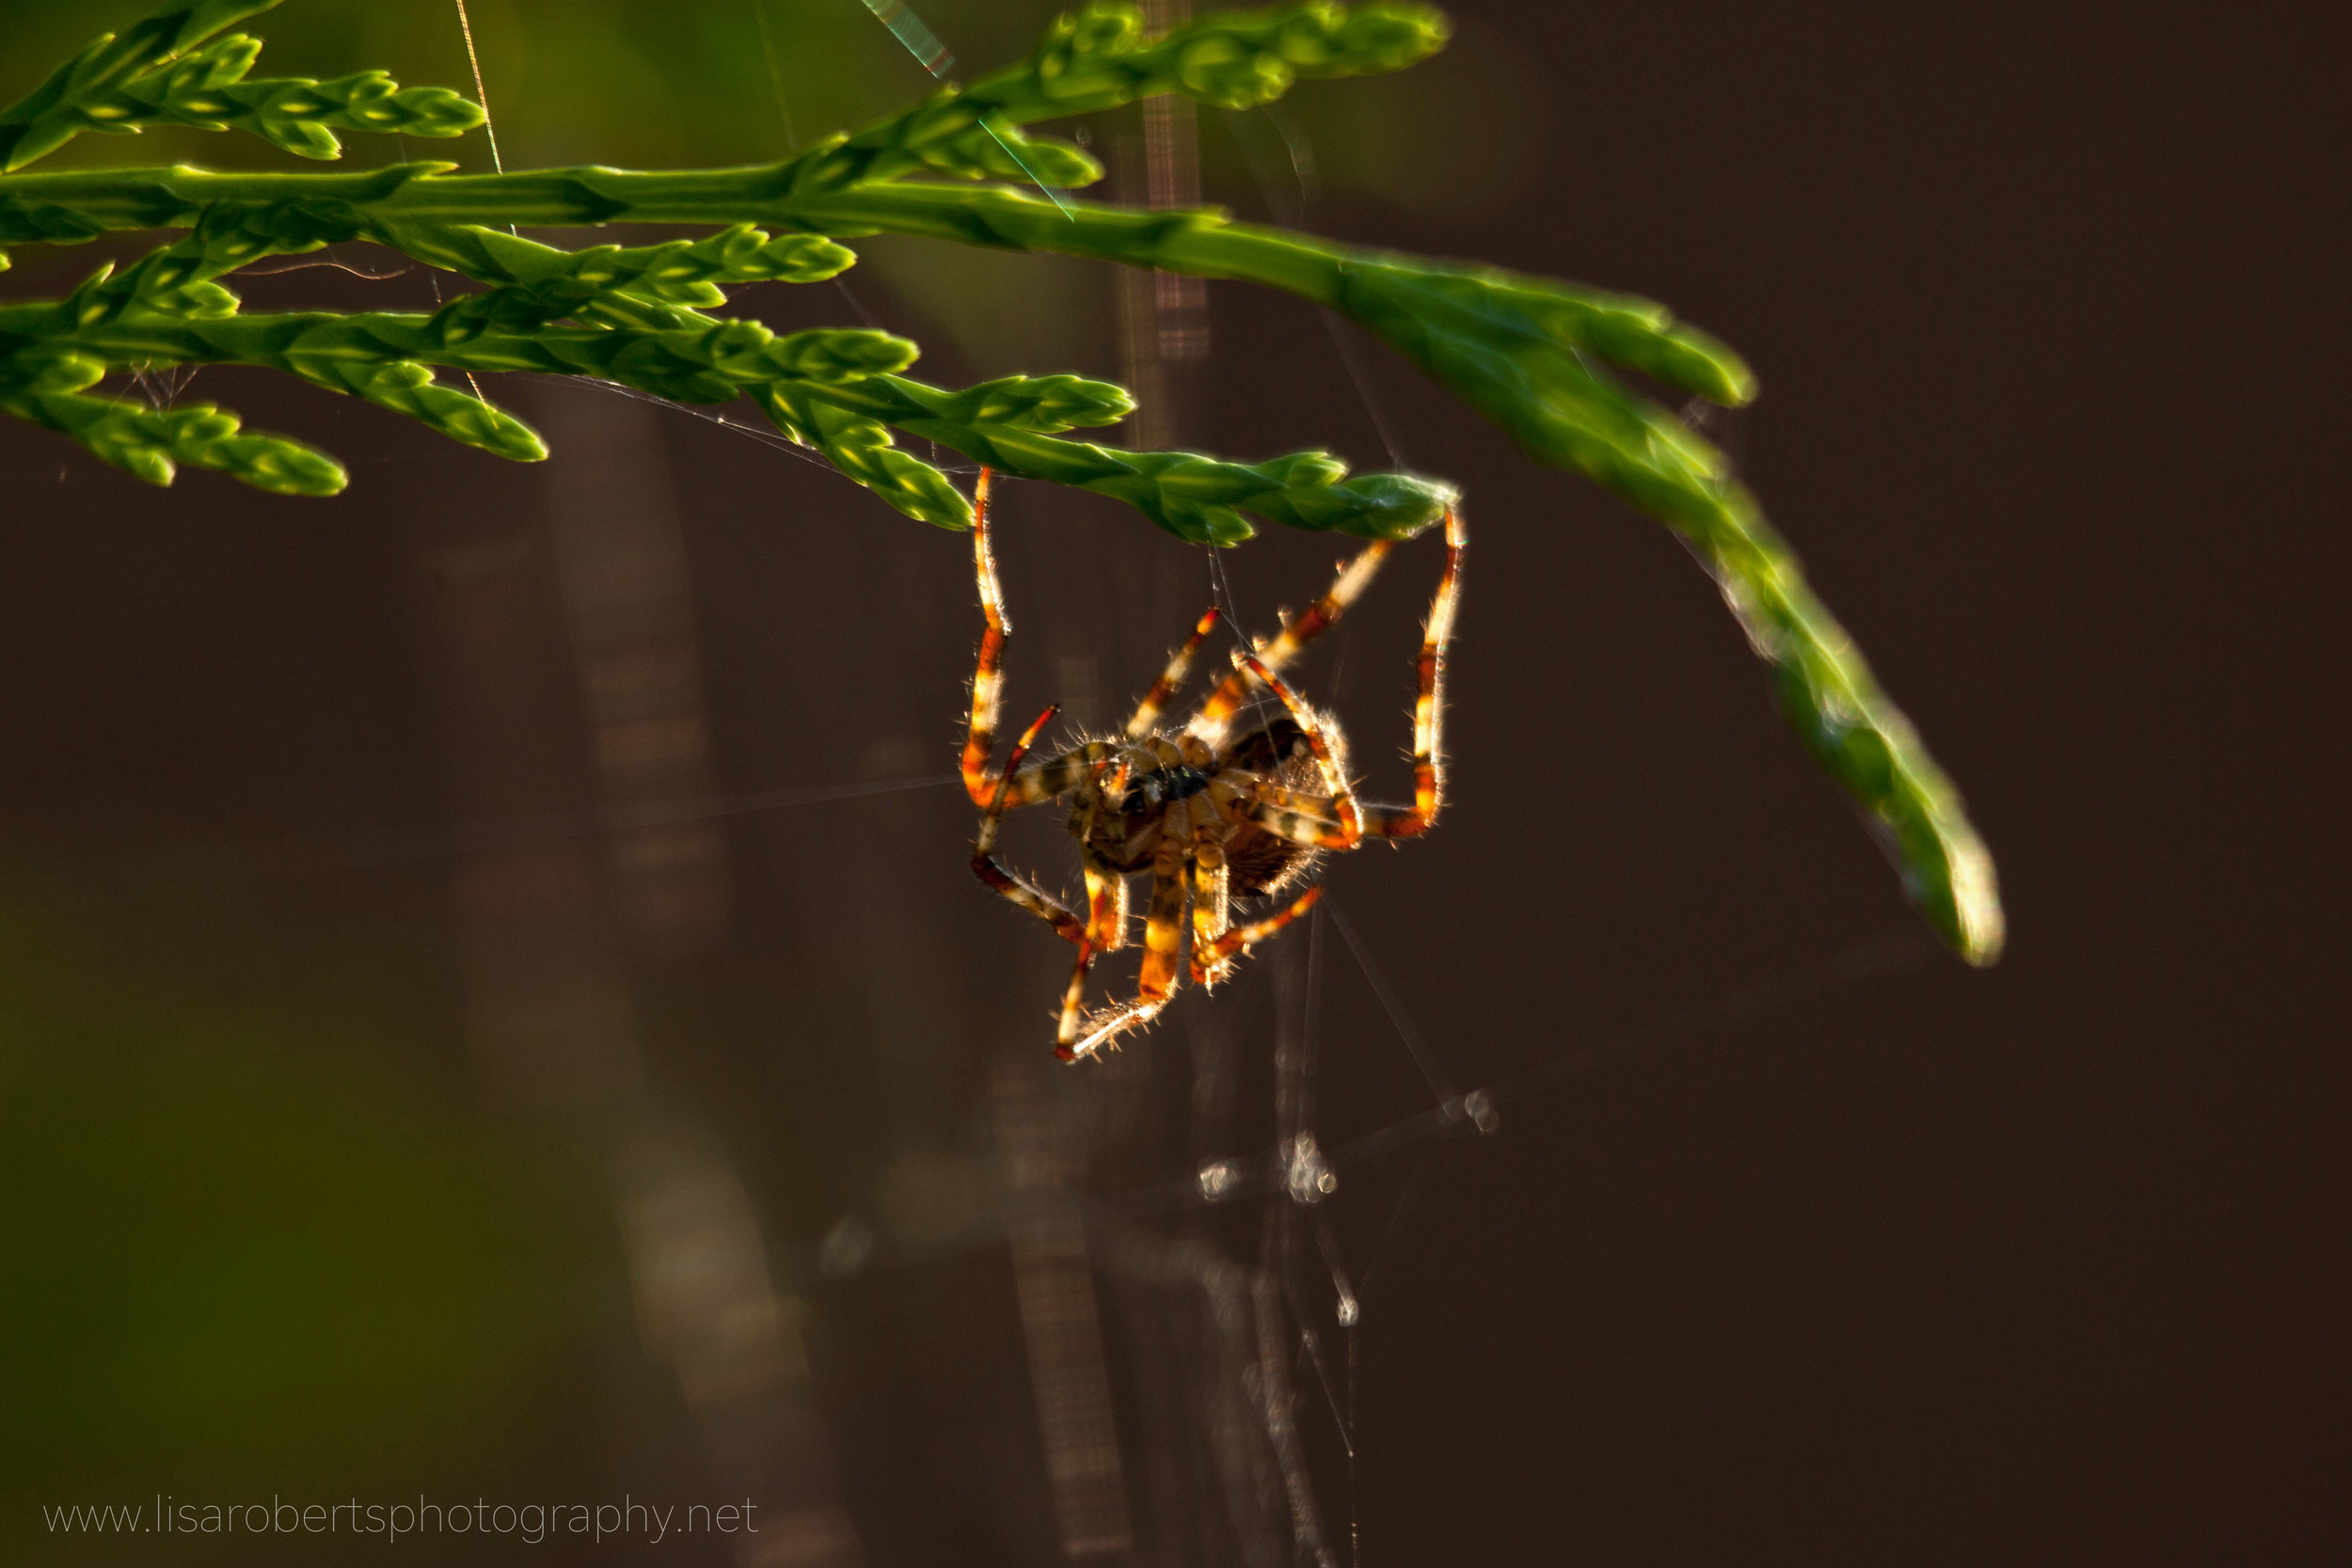 Garden Spider upside down on Conifer hedge